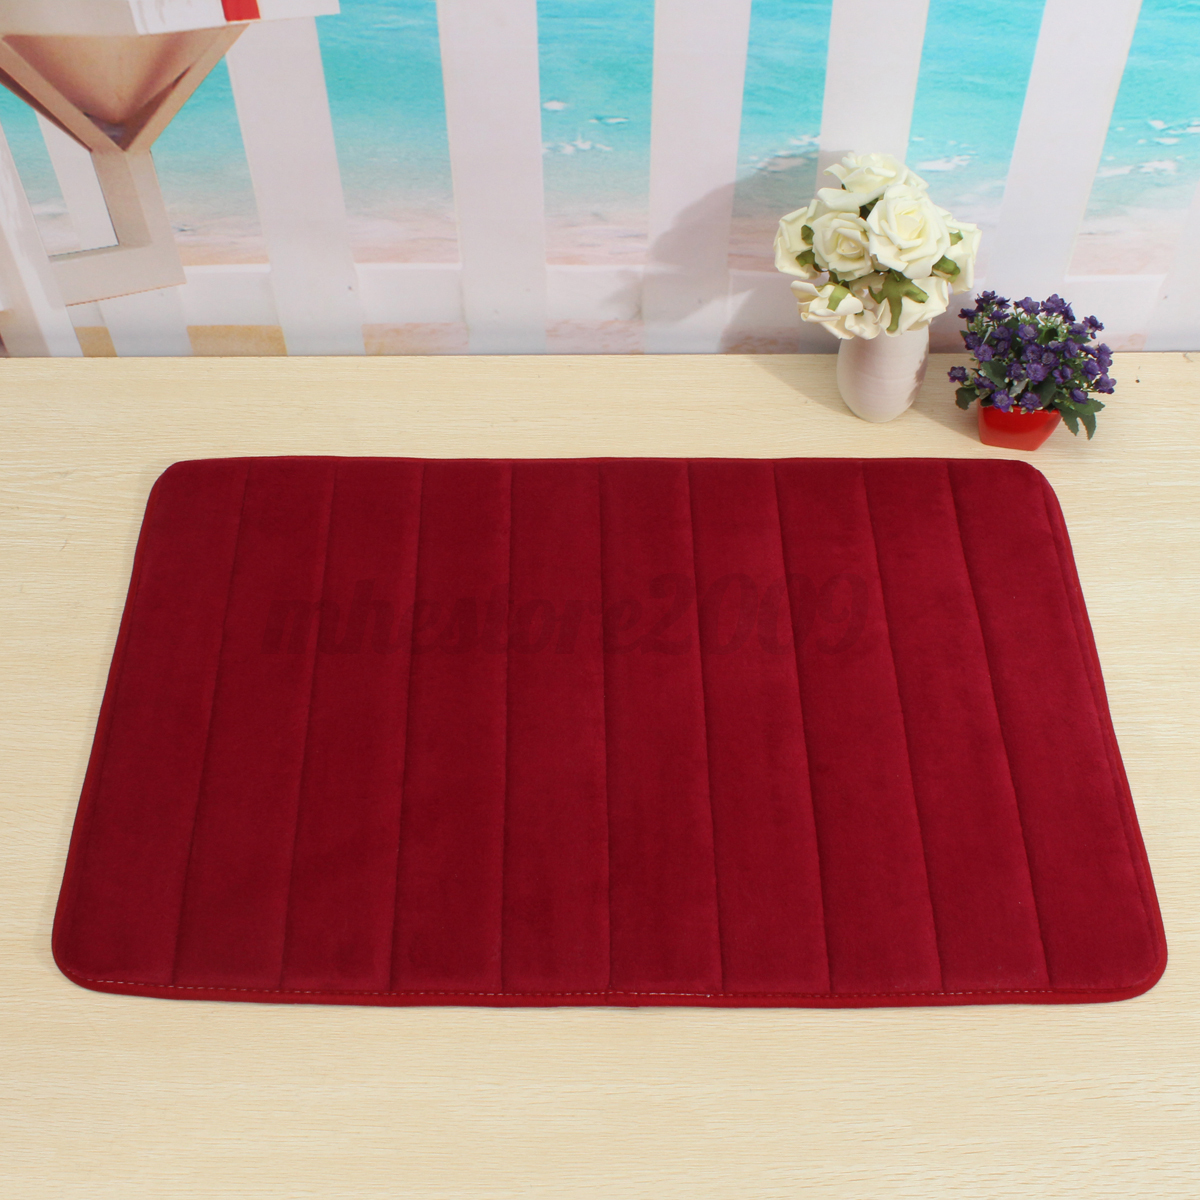 non slip bathroom floor memory foam non slip bathroom bath mat bedroom shower 19749 | 3FD79286563747F6272E9ACD03CF939216C8E9563643CE66C6D27308CACB99D243C6C89CB7D2C63646C9D2566303999BCC9BCCCA2366769B36F523CD